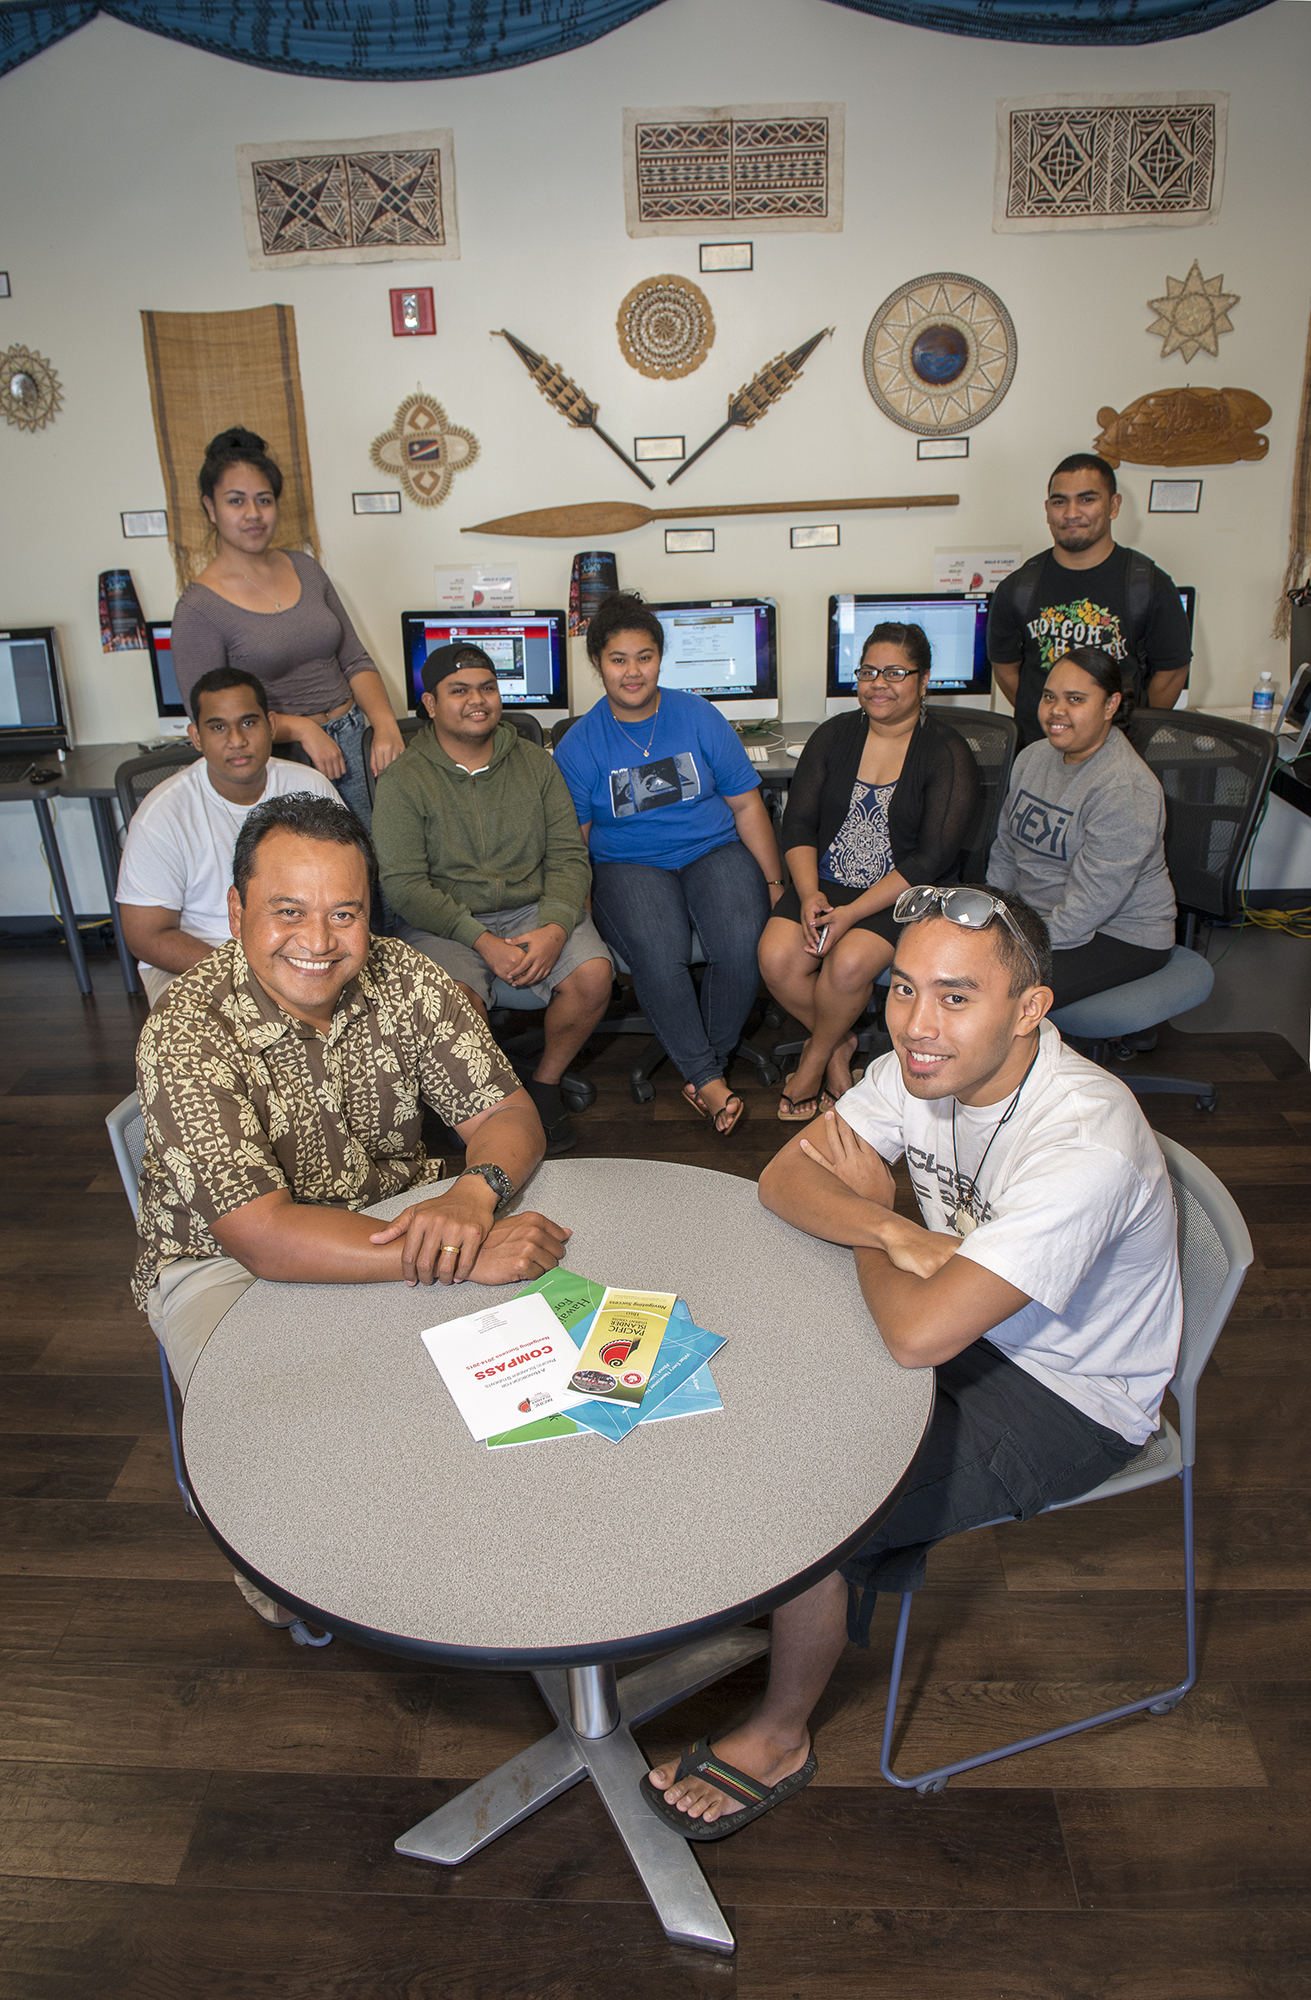 <p>Vidalino Raatior, left, with Micronesian students and staff at thePacific Islander Student Center at UH Hilo. Raatior runs the student center and is determined to help fellow Micronesians settle successfully in Hawaii.</p>